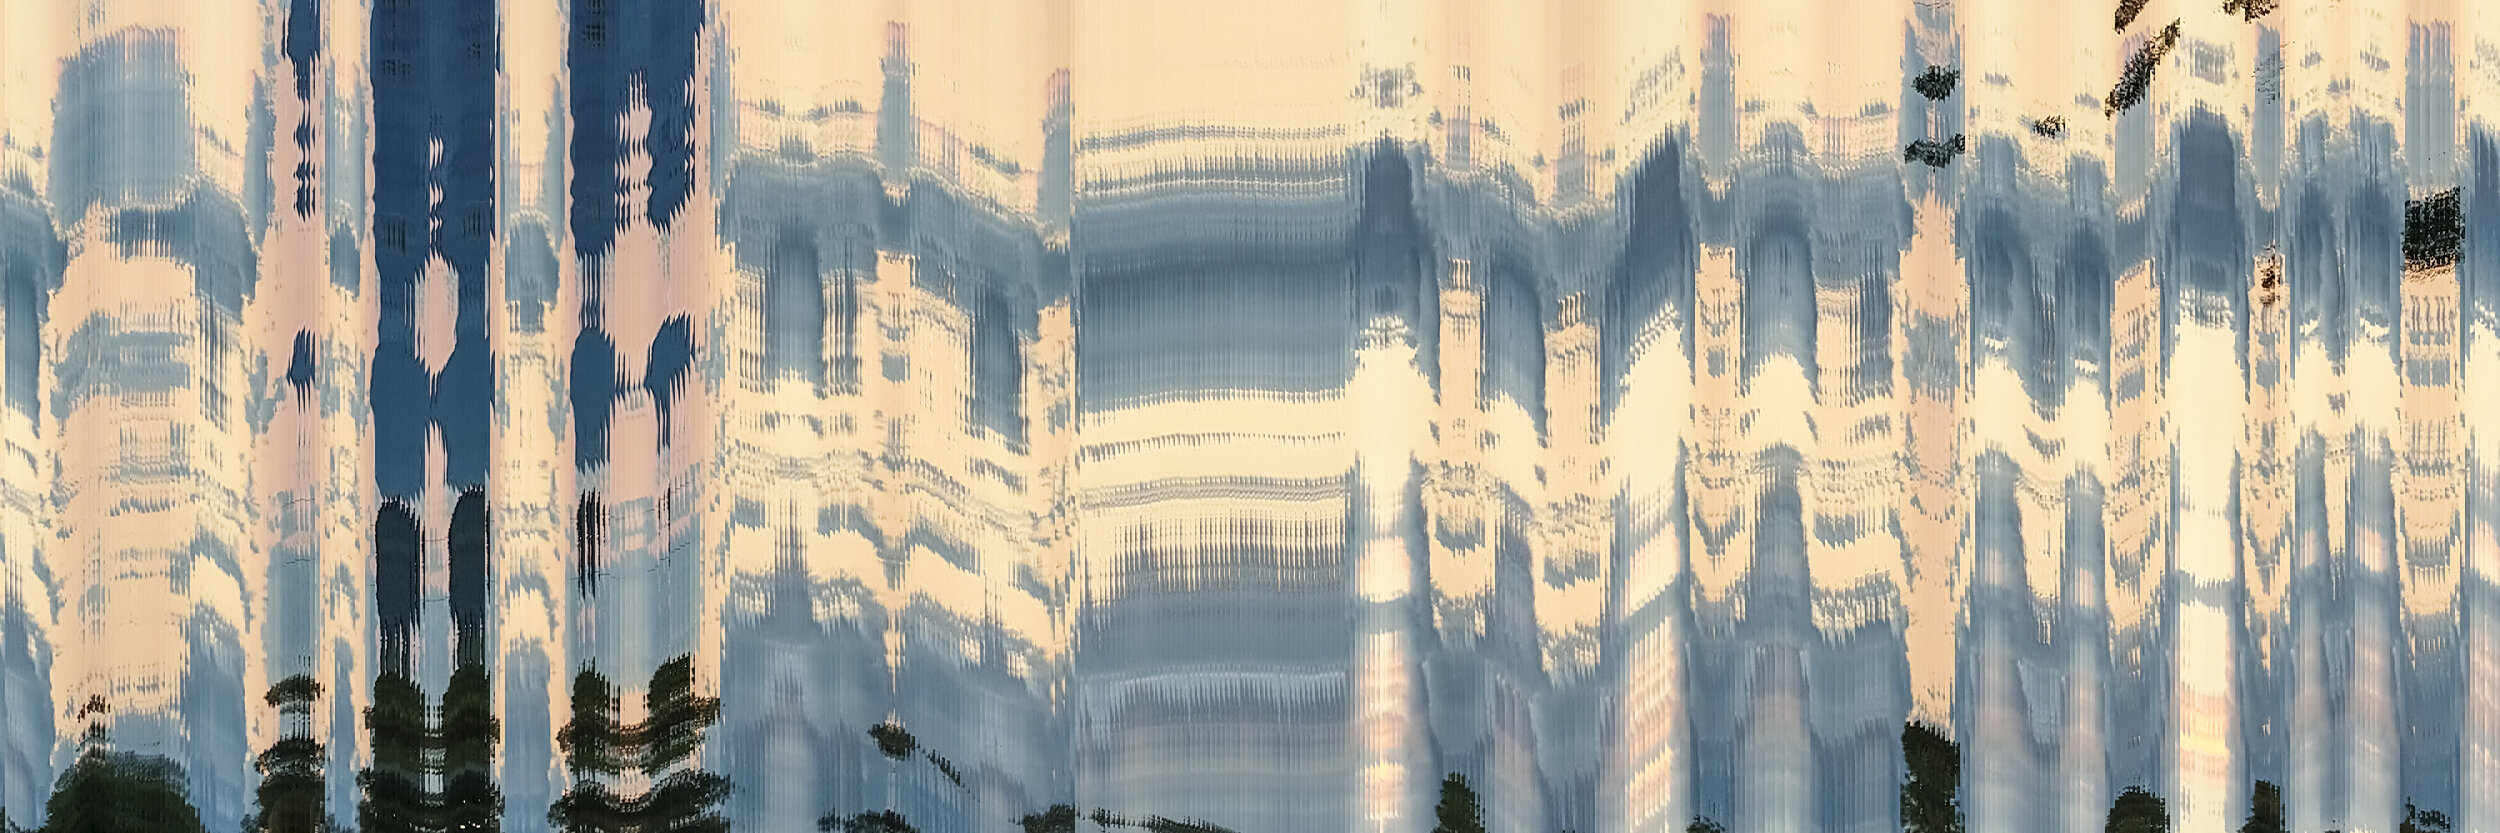 Alan Skees,  American Glitch: Neo Regionalism - Car - AL/VA - I-459 - 02 , 12h x 36w inches, 2019, Digital slit-scan ink jet print